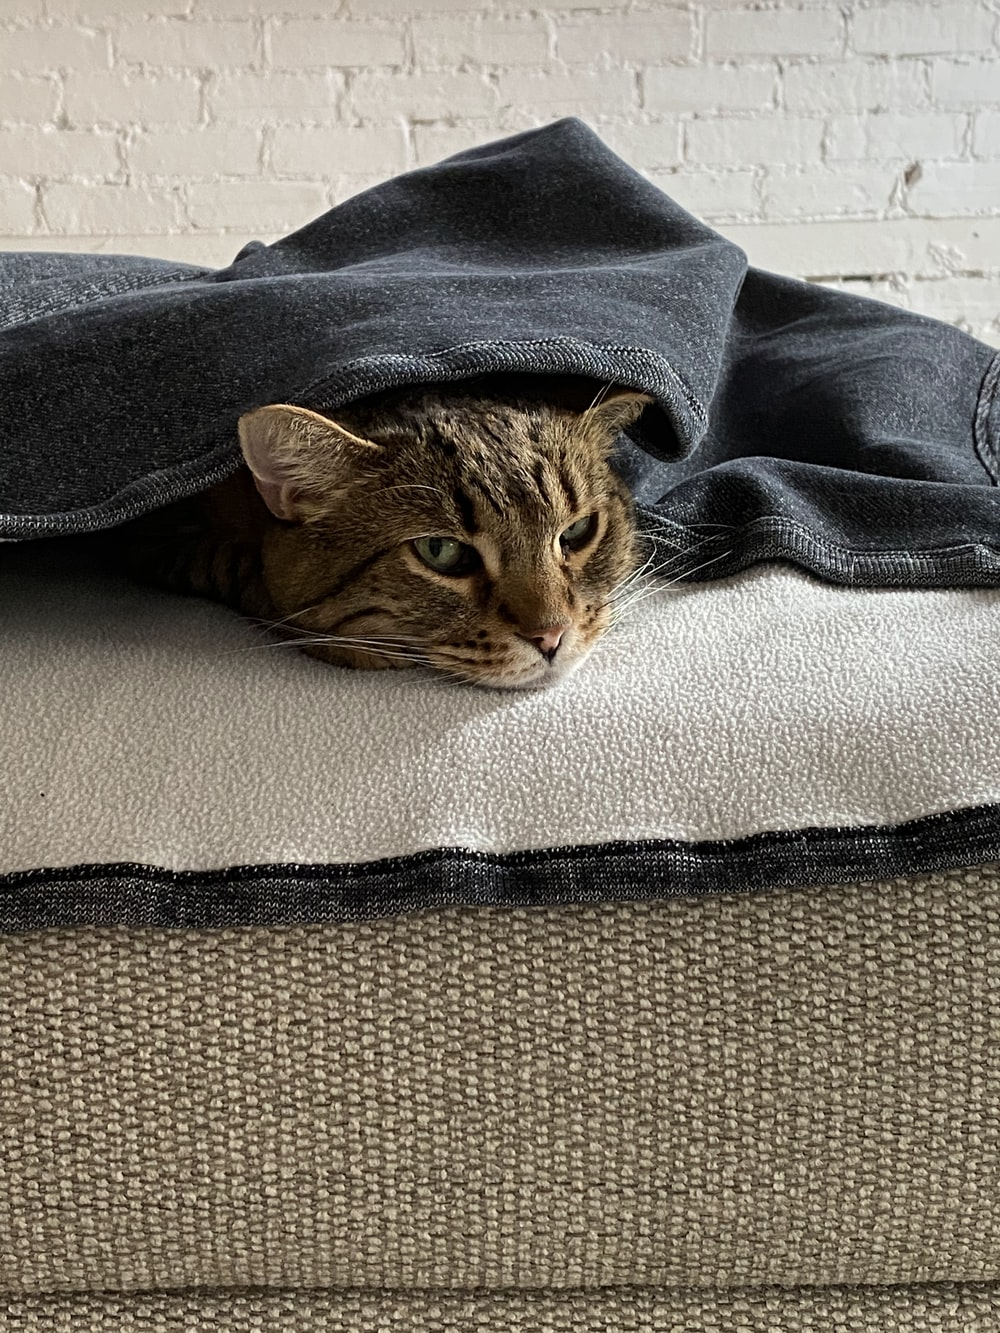 brown tabby cat on gray textile